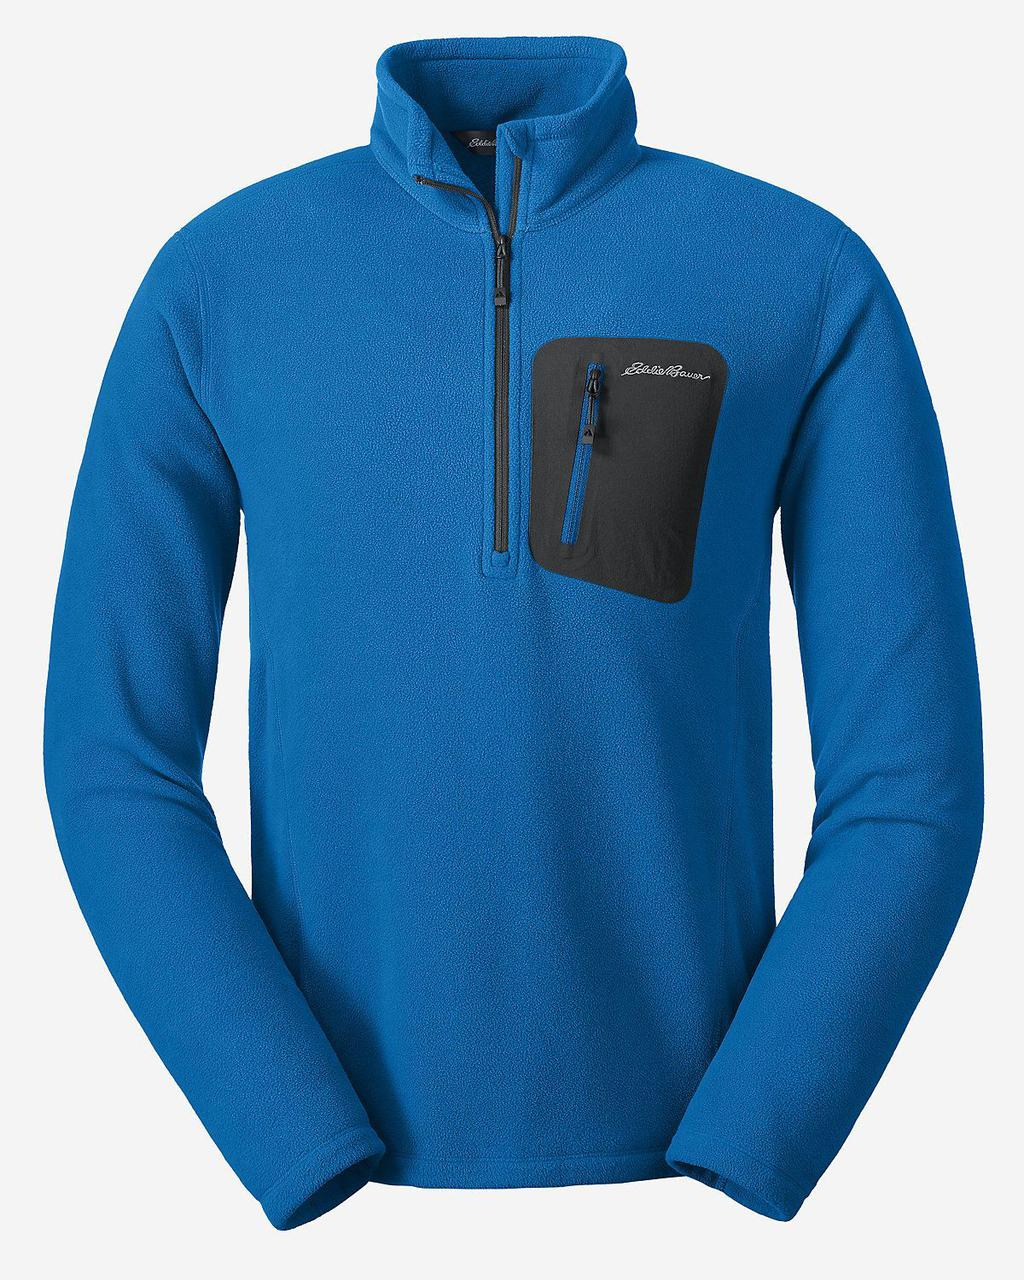 Кофта Eddie Bauer Mens Cloud Layer Pro Fleece Pullover ASCENT BLUE